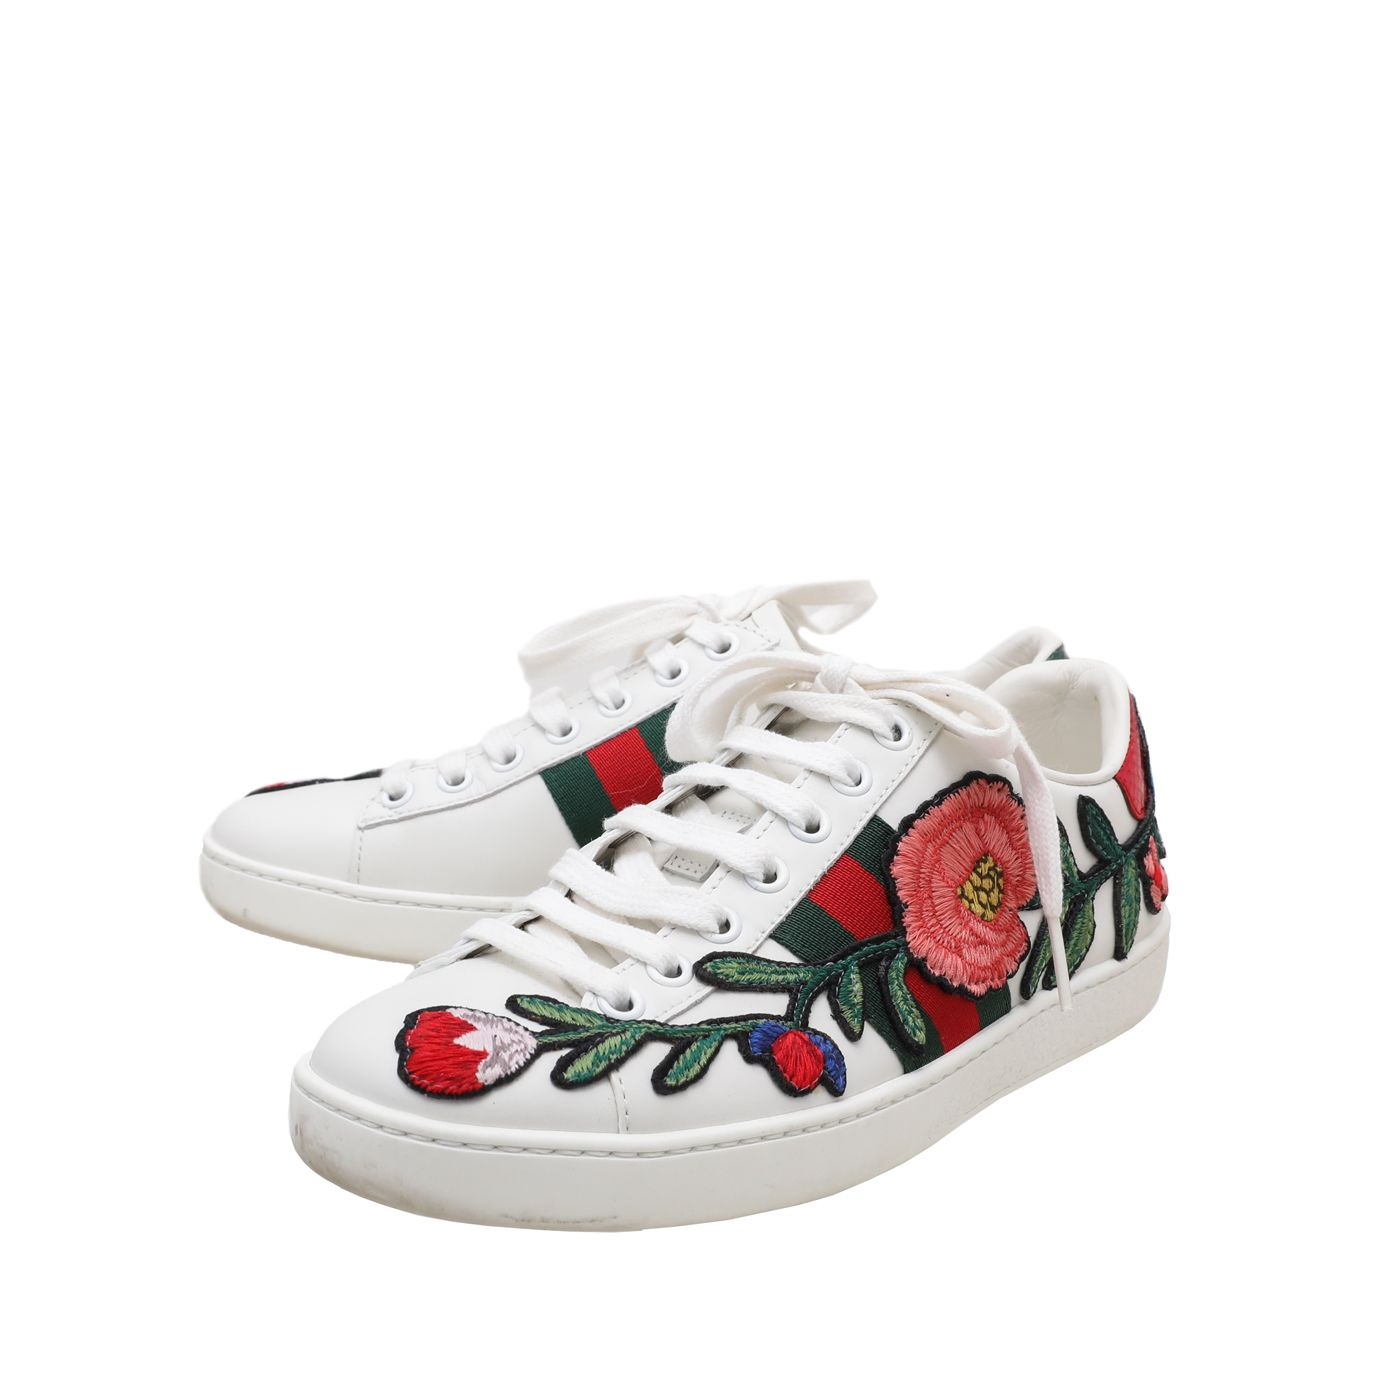 Gucci White Multicolor Floral Embroidered Ace Web Sneakers 35